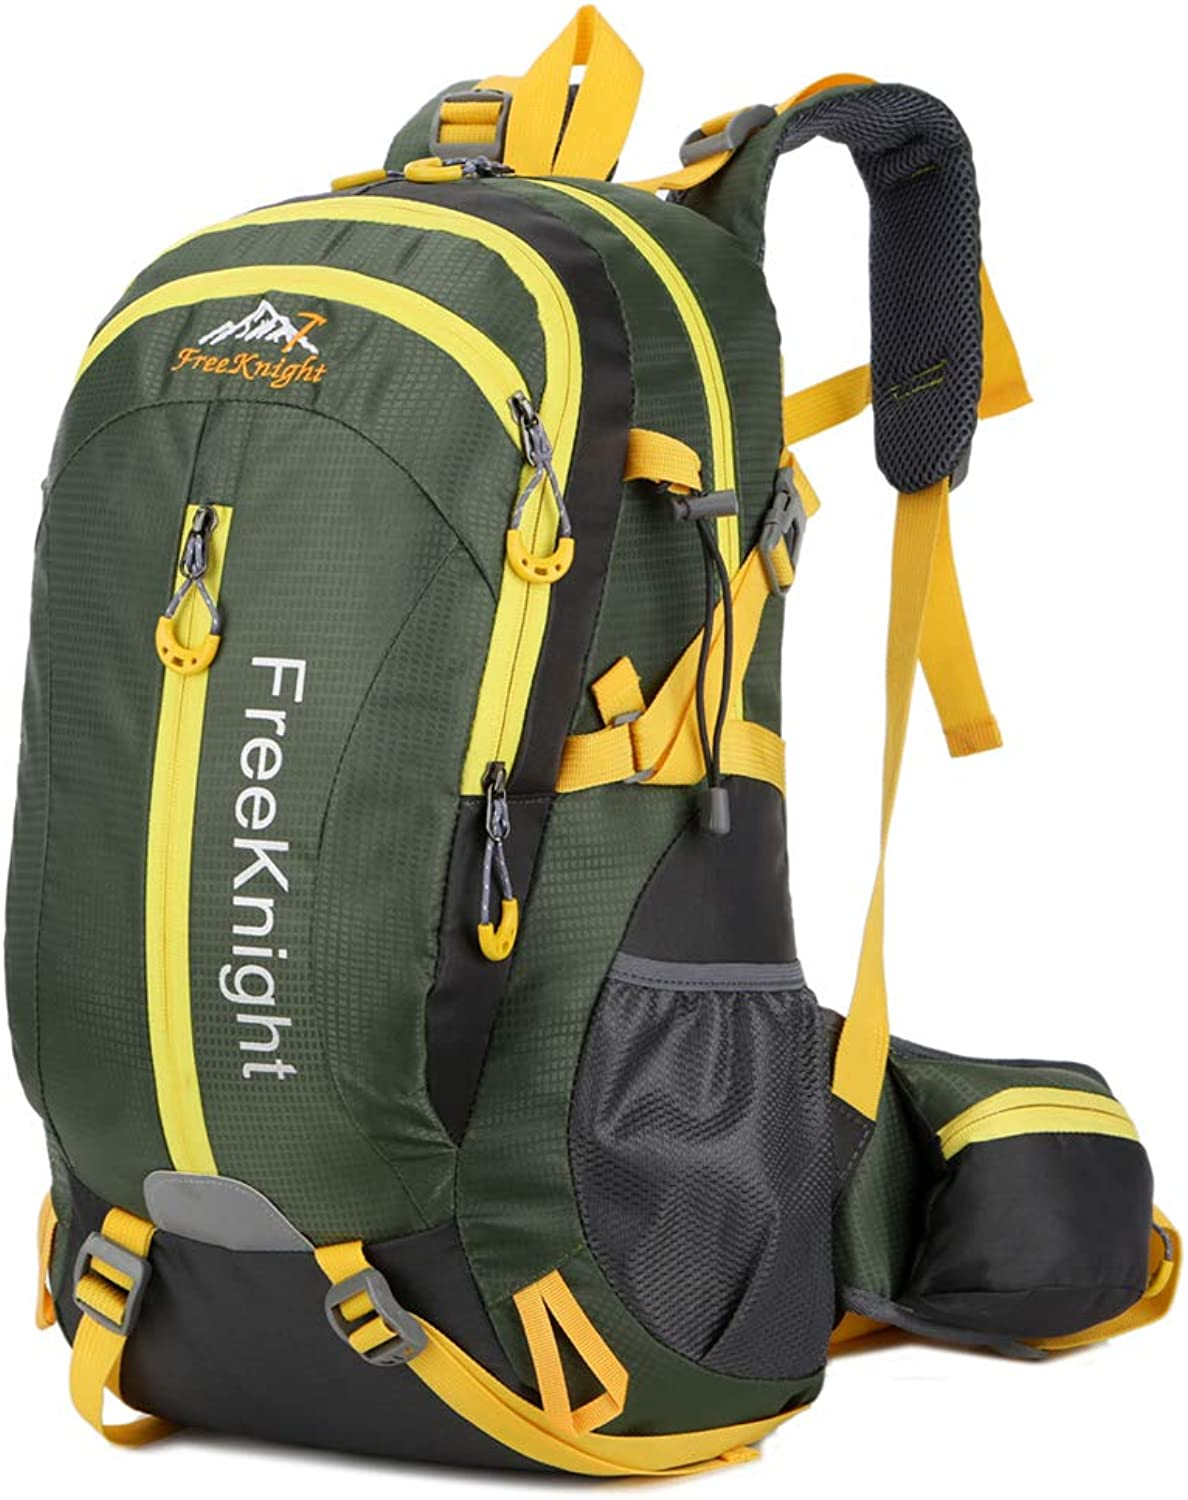 40L Waterproof Hiking Backpack, Large Outdoor Sport Trekking Rucksack Mountaineering Daypack for Travelling Picnic Camping Climbing,ArmyGreen